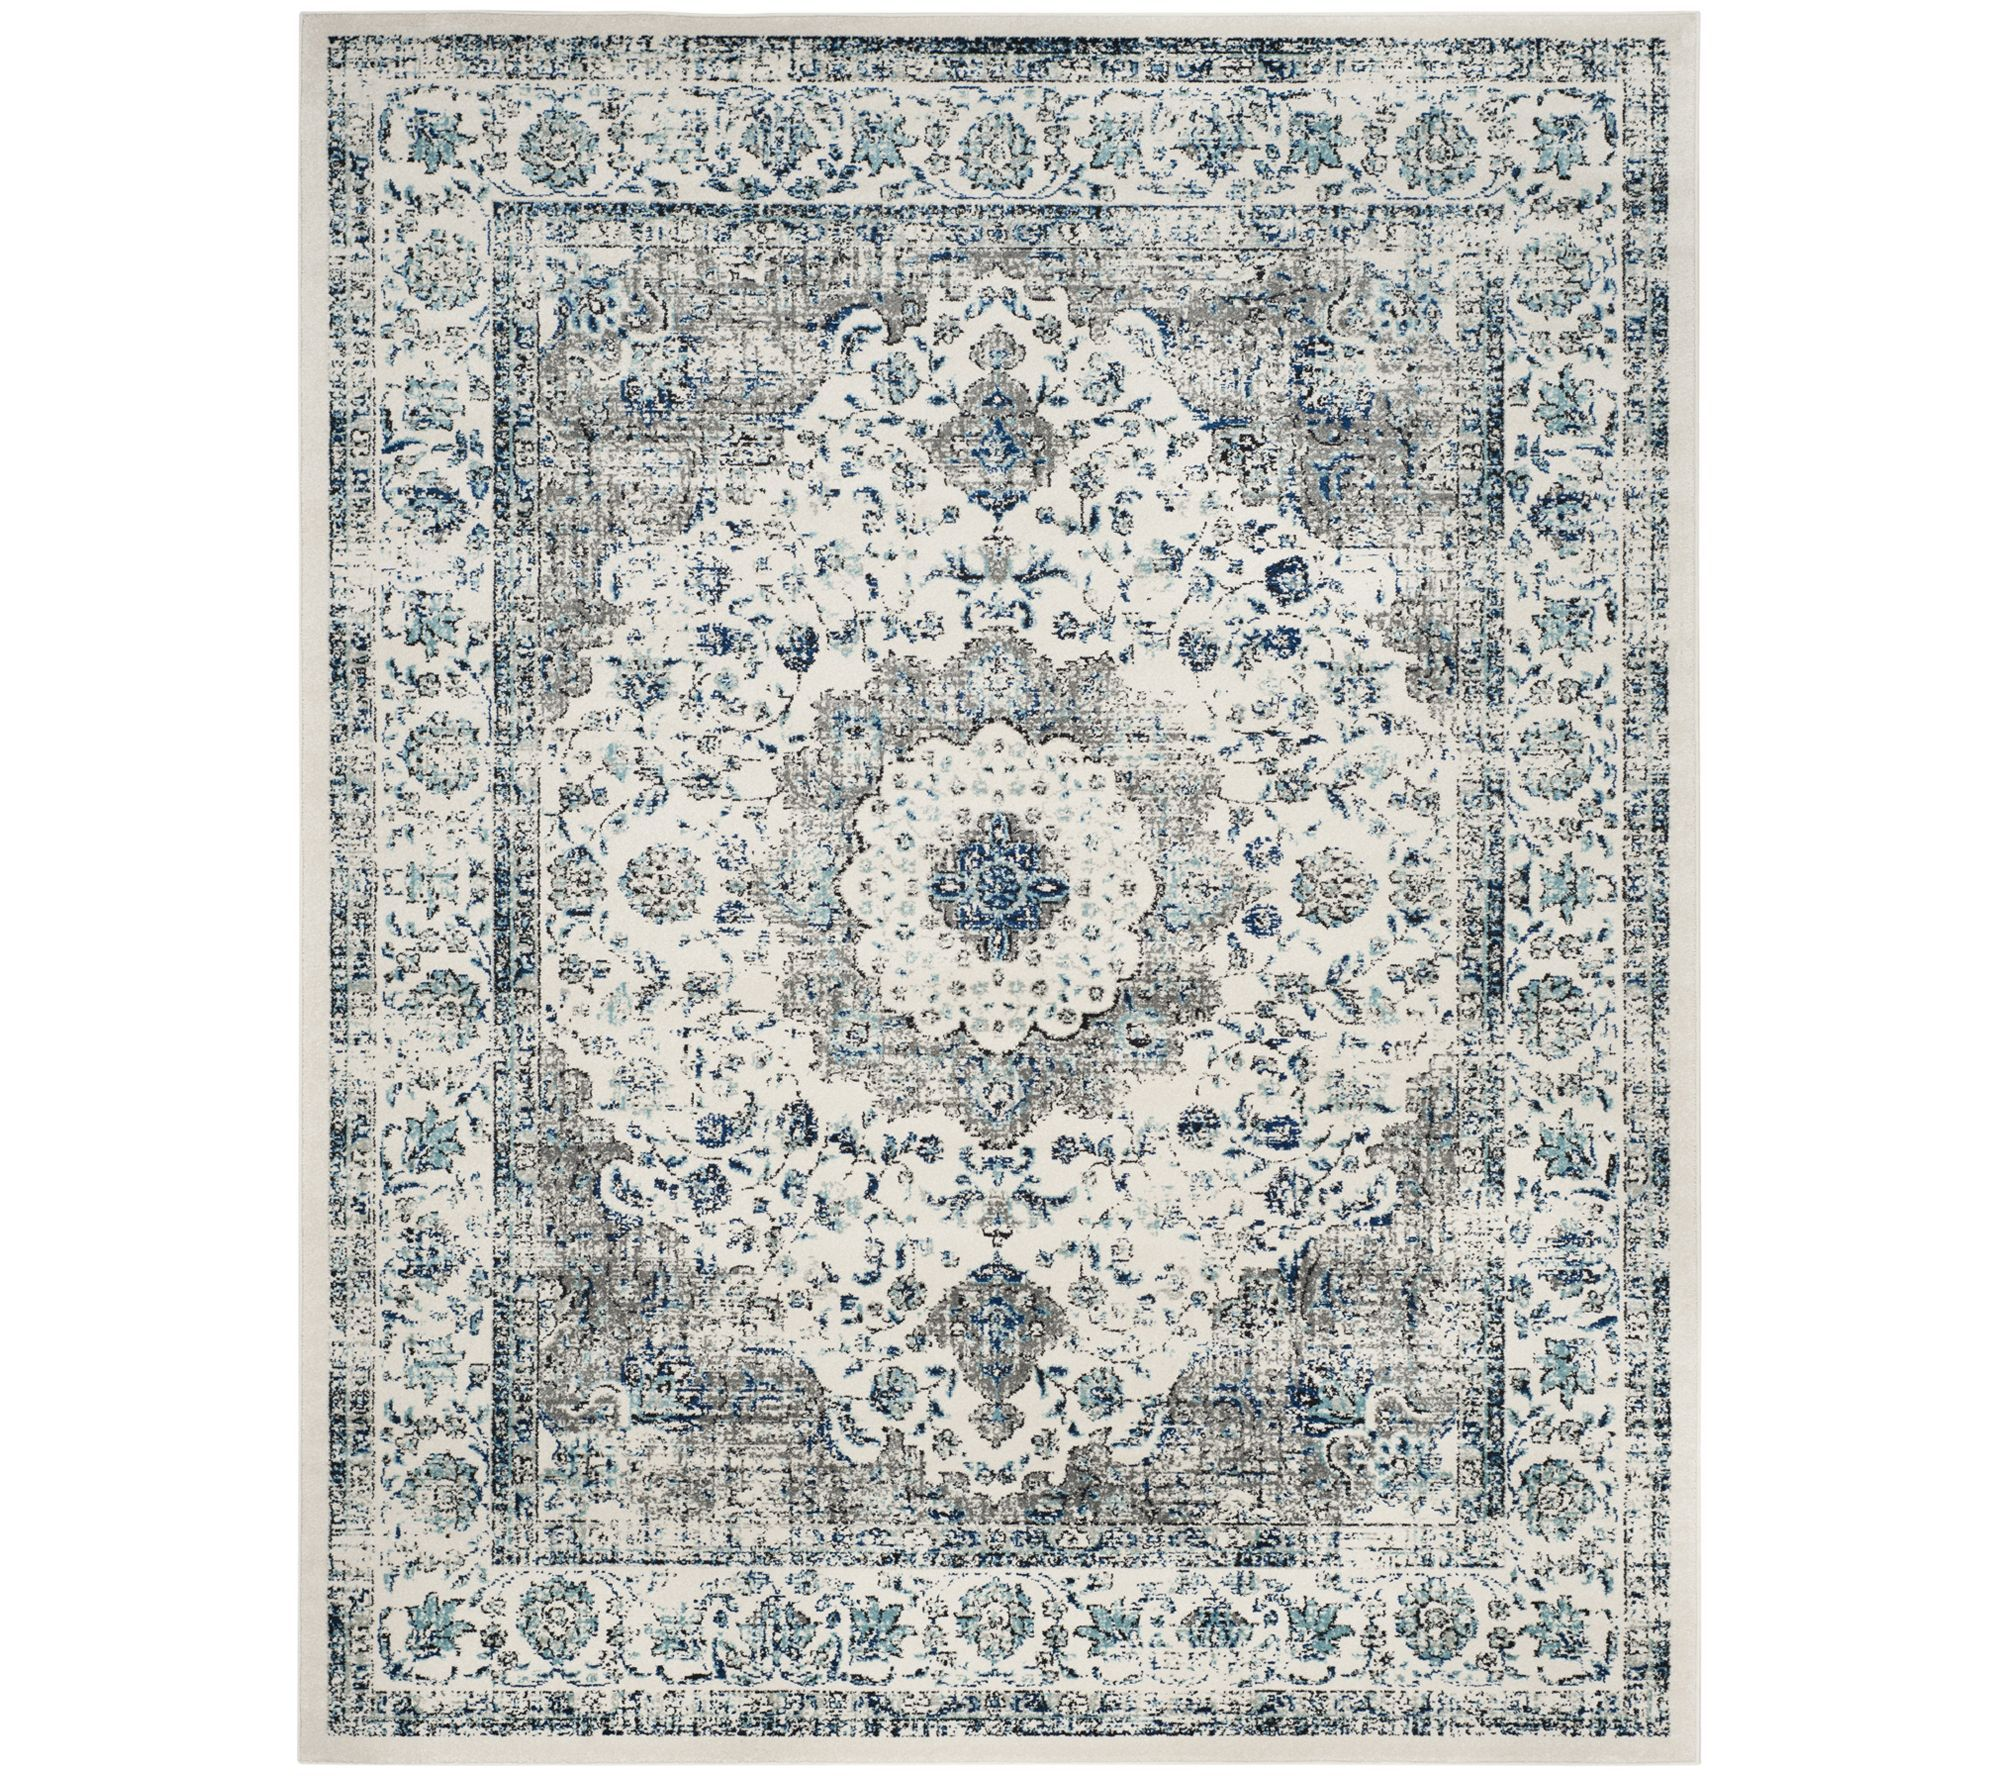 Safavieh Evoke Sutton 8 X 10 Rug Qvc Com Vintage Area Rugs Square Area Rugs Blue Area Rugs